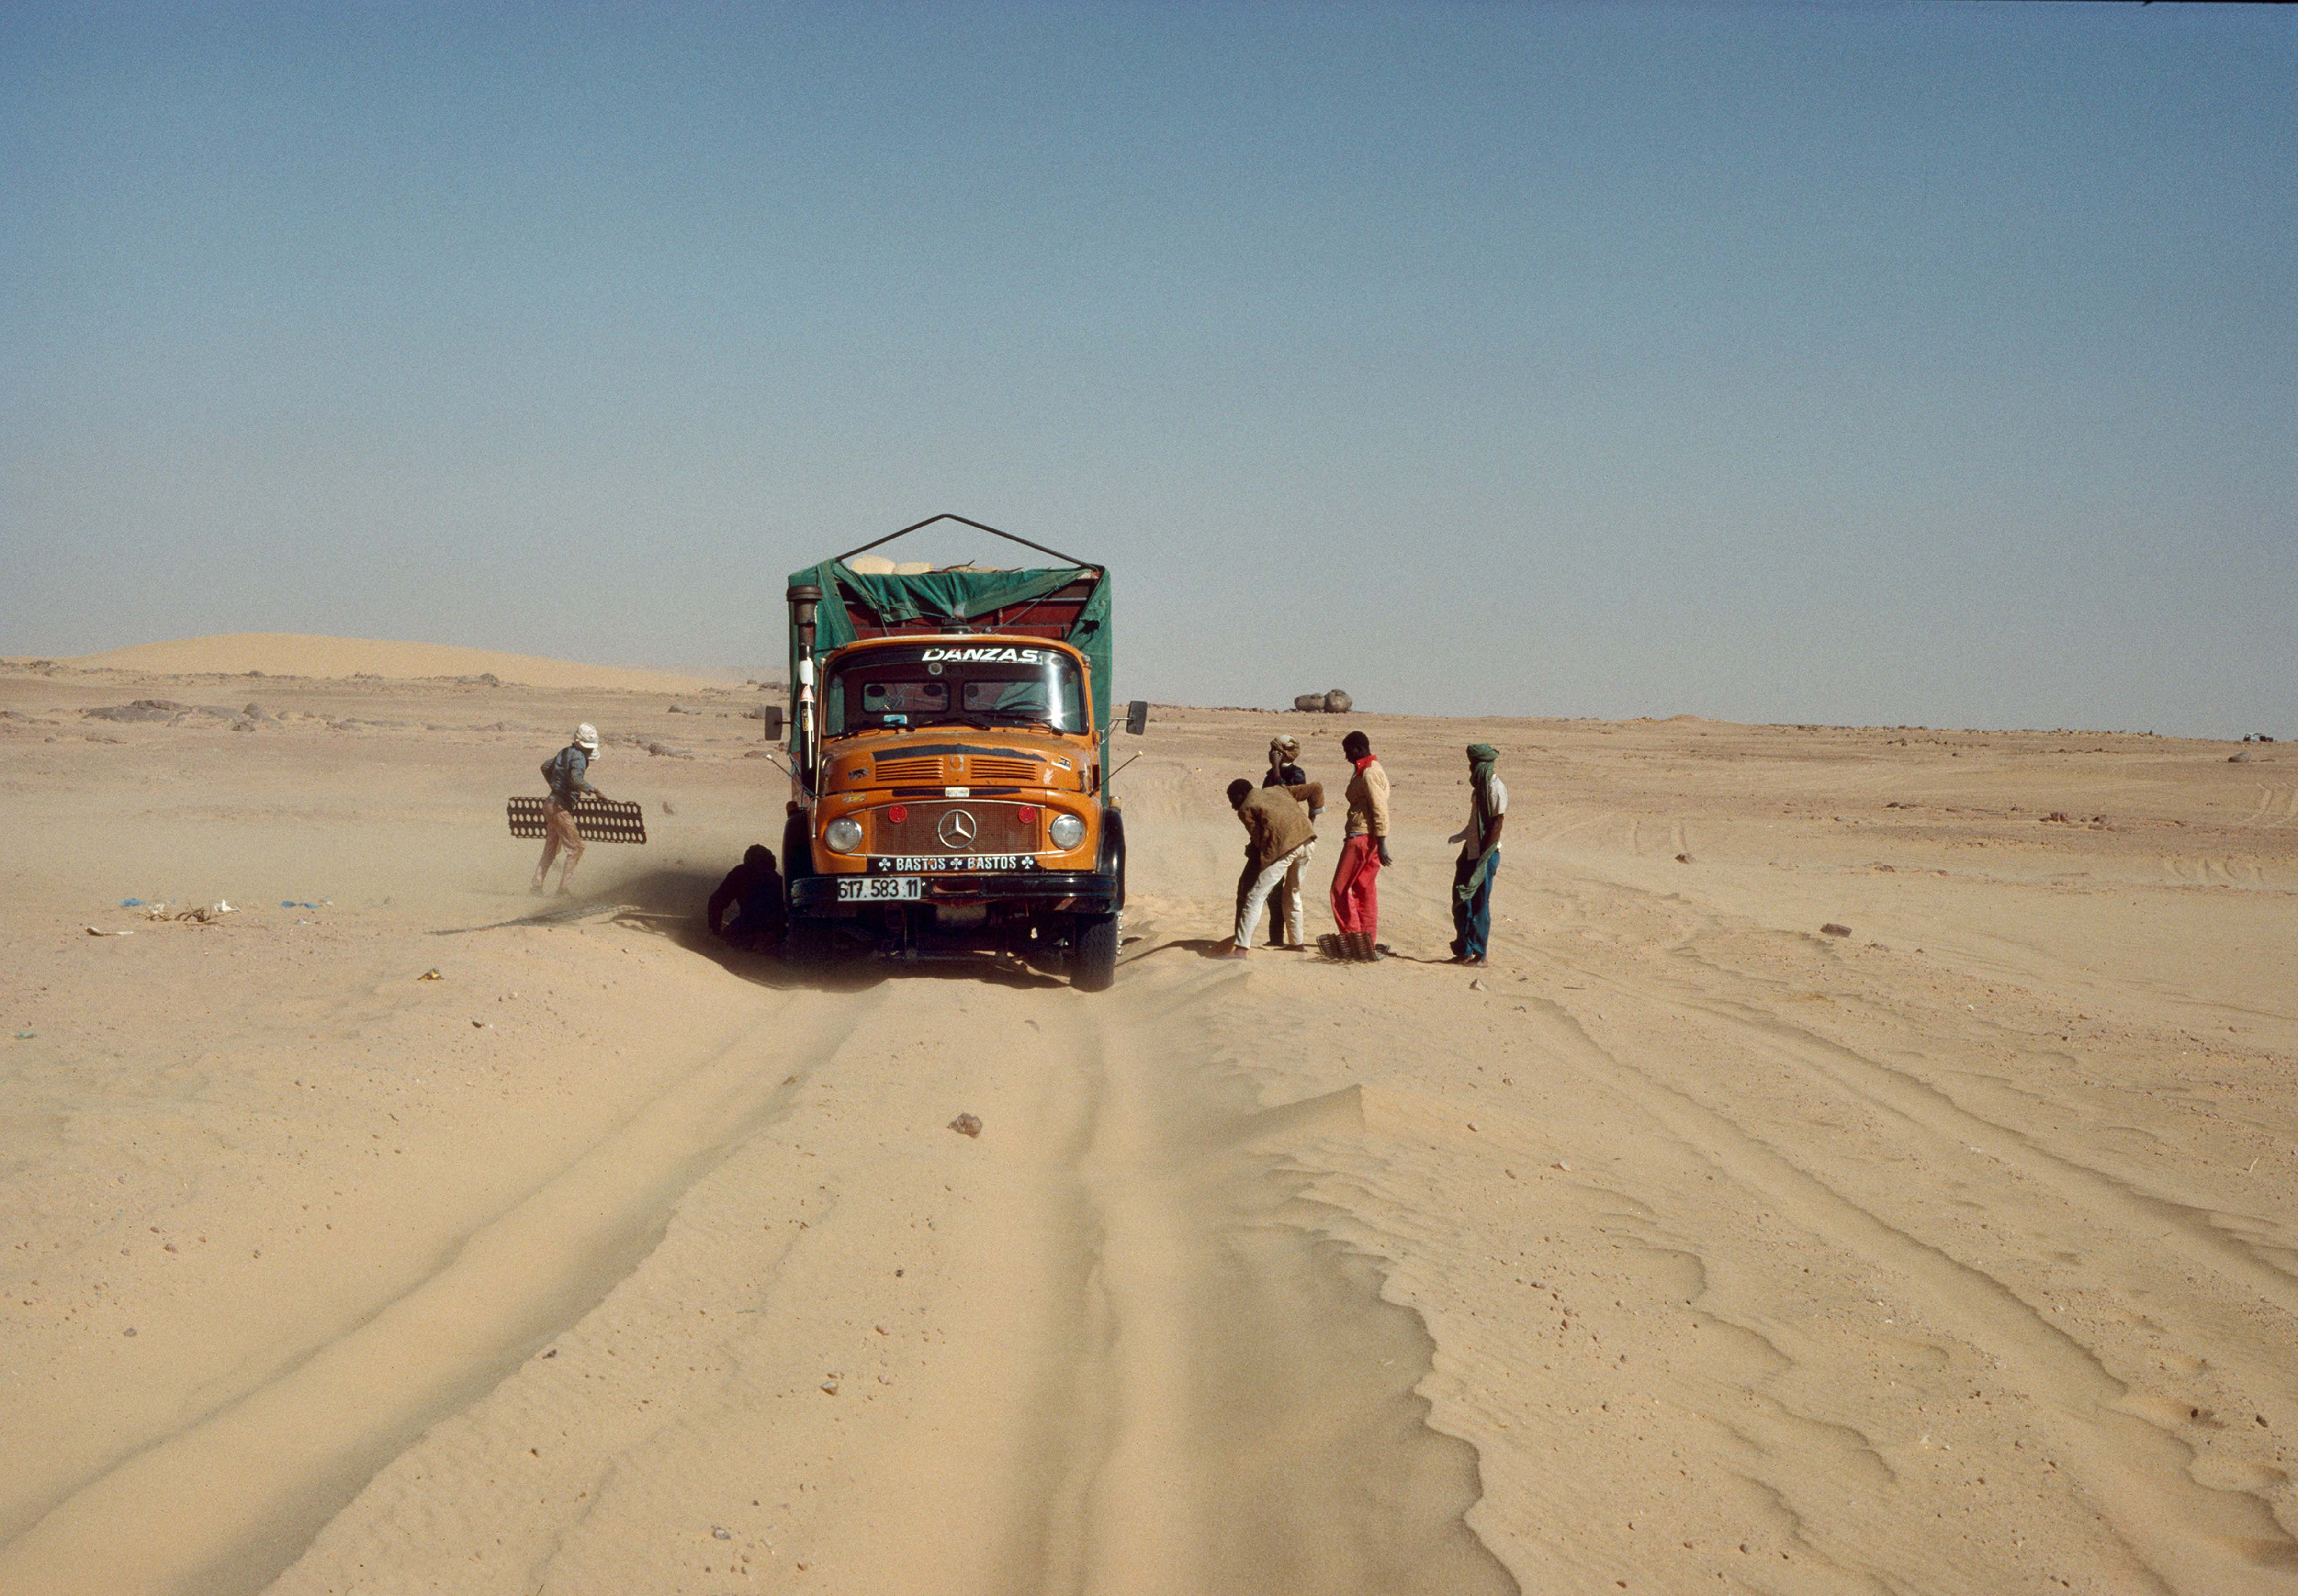 The Truck Gets Stuck in the Sand